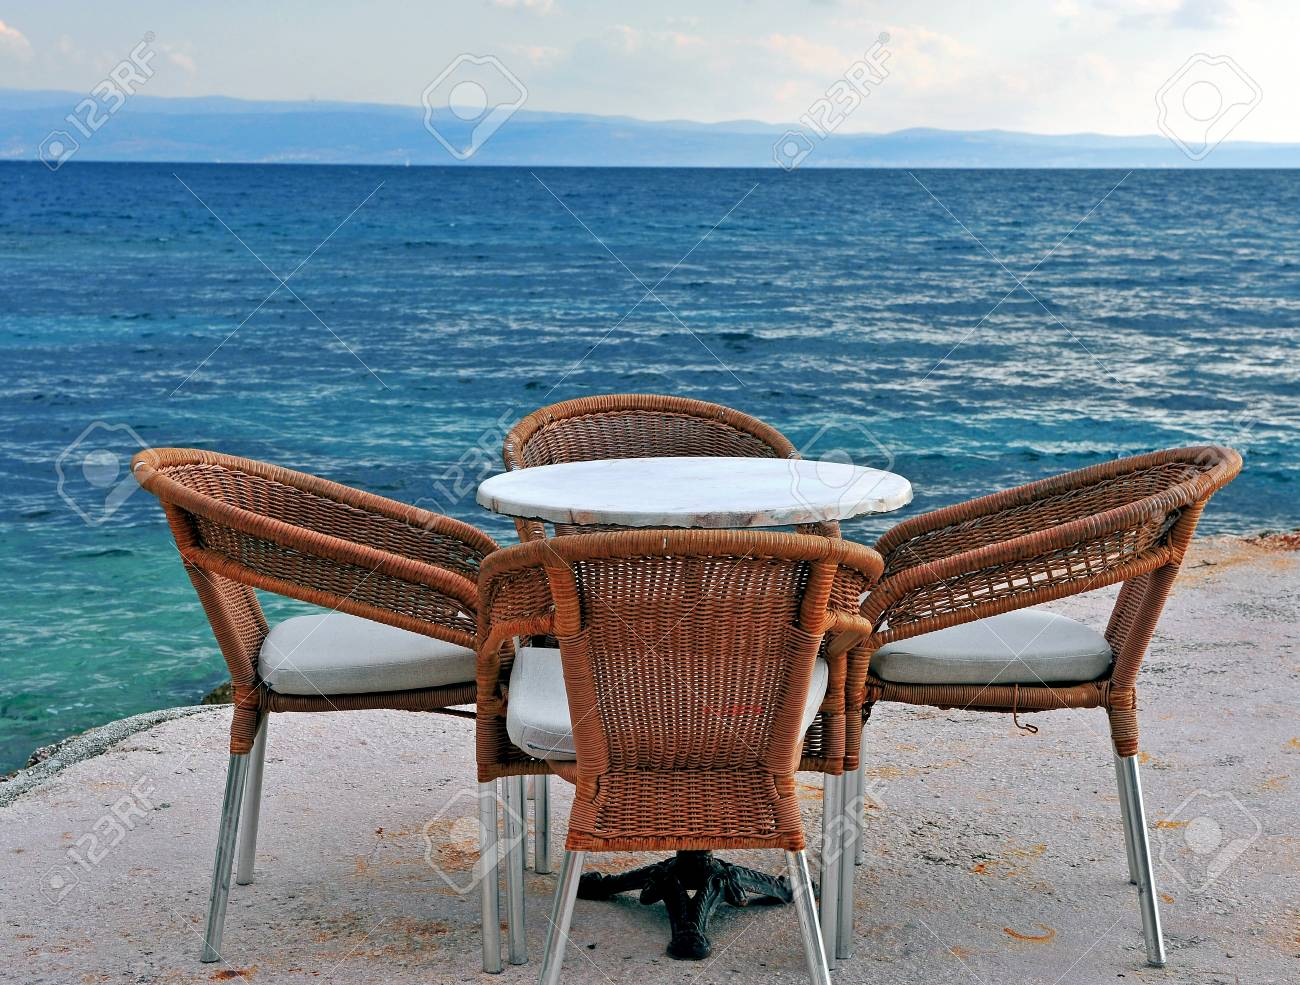 Stock Photo   Wooden Cafe Chairs And Table In Front Of Mediterranean Sea